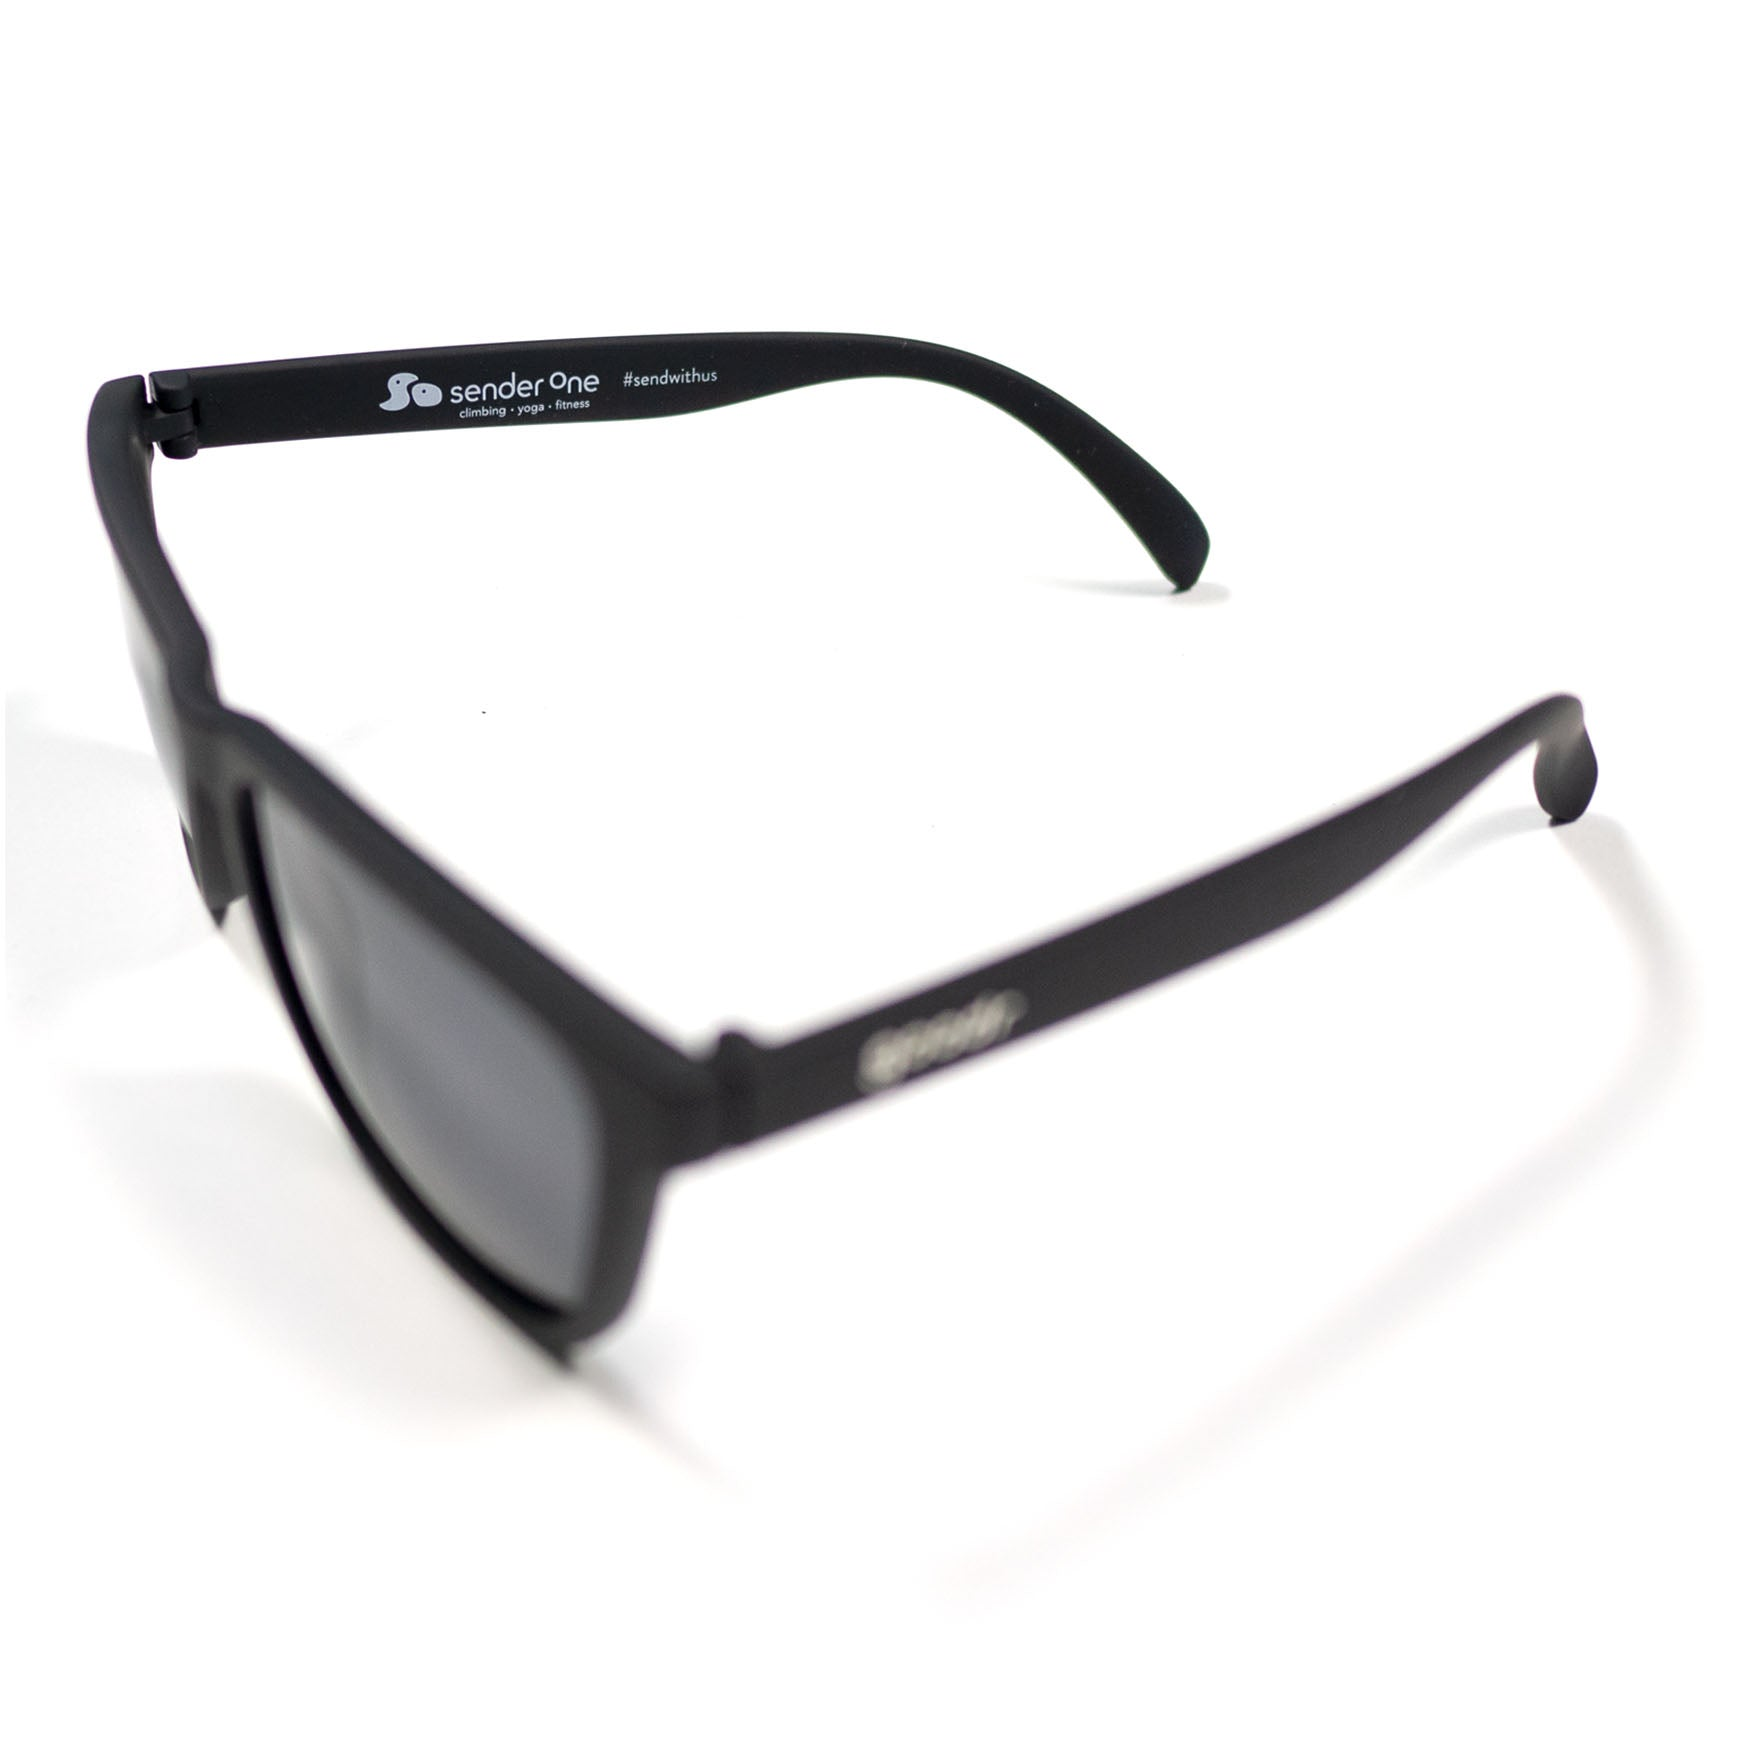 S1 Branded Goodr Sunglasses